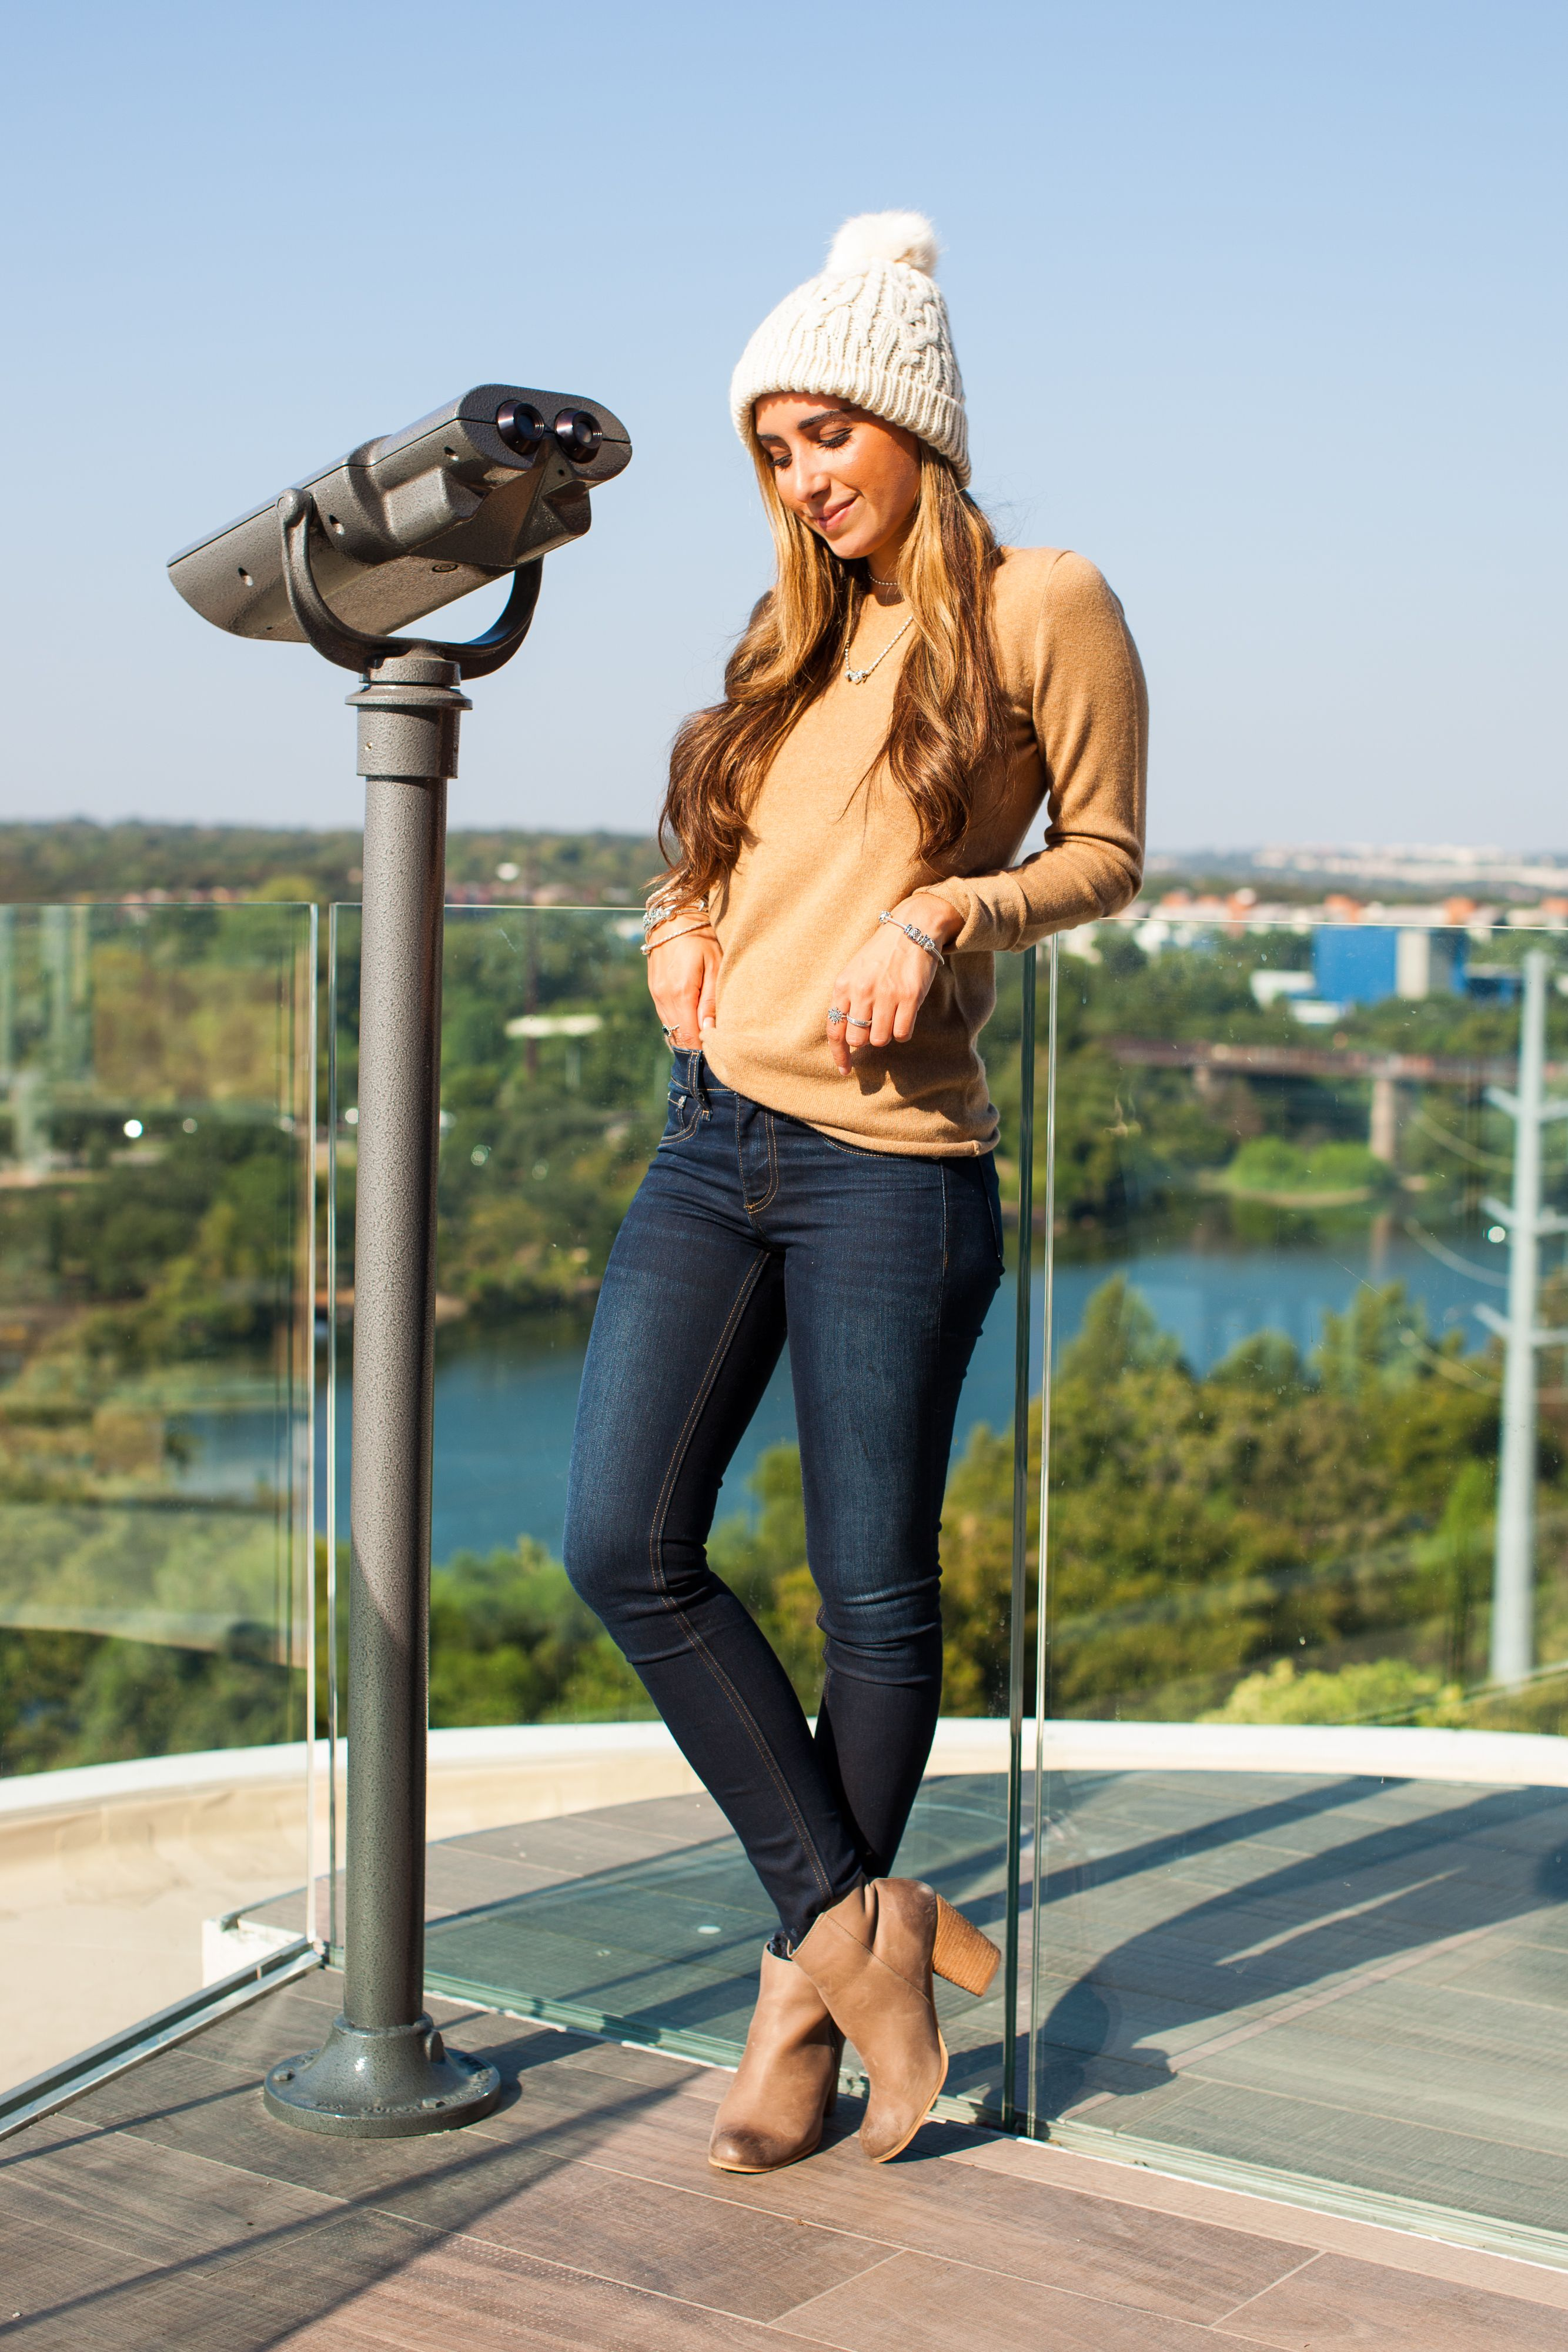 "<p>Austin-based style blogger <a href=""https://www.instagram.com/thedarlingdetail/?hl=en"" target=""_blank"" data-tracking-id=""recirc-text-link"">Jessi Afshin</a> is passionate about her hometown (she studied at University of Texas), regularly referencing the city's coolest hangouts and chic new openings on her blog, <a href=""http://www.thedarlingdetail.com/"" target=""_blank"" data-tracking-id=""recirc-text-link"">The Darling Detail</a>. With a knack for mixing stylish looks with practical aspects (like heels you can actually walk in), she was our go-to girl for everything Austin. </p>  <p><em data-redactor-tag=""em"">PANDORA Jewelry Holiday Collection, price varies, <a href=""http://estore-us.pandora.net/en-us/inspiration/the-holiday-collection/?cid=BrndMedia_Drop6_Dec_2016_MarieClaire_CustomContent_NativeInfluenceArticles_HolidayCollection_InspirationPage"" target=""_blank"" data-tracking-id=""recirc-text-link"">pandora.net</a></em></p>"